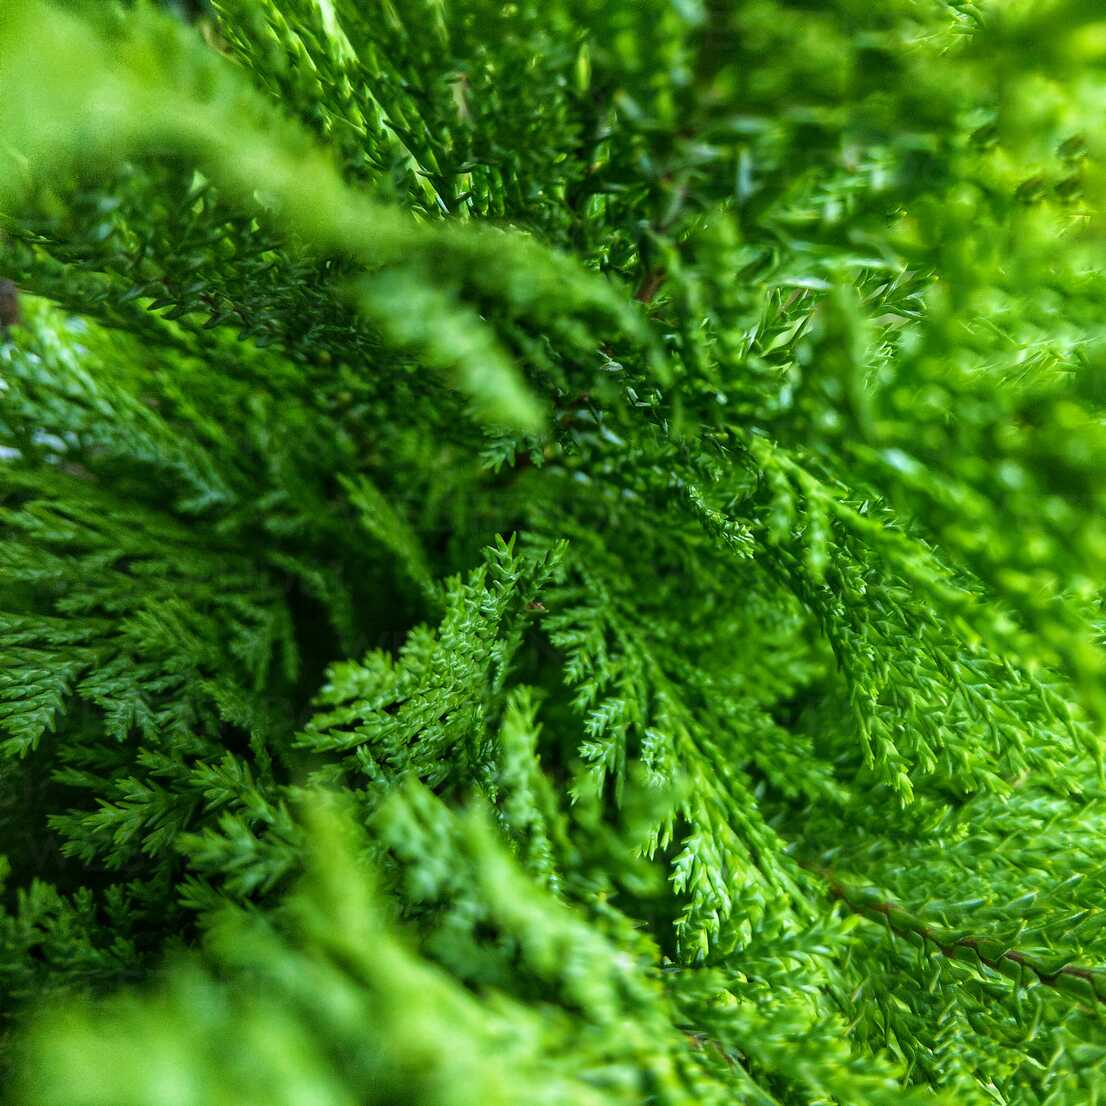 Plant, Details, Green, Berlin, Germany - NGF00450 - Nadine Ginzel/Westend61